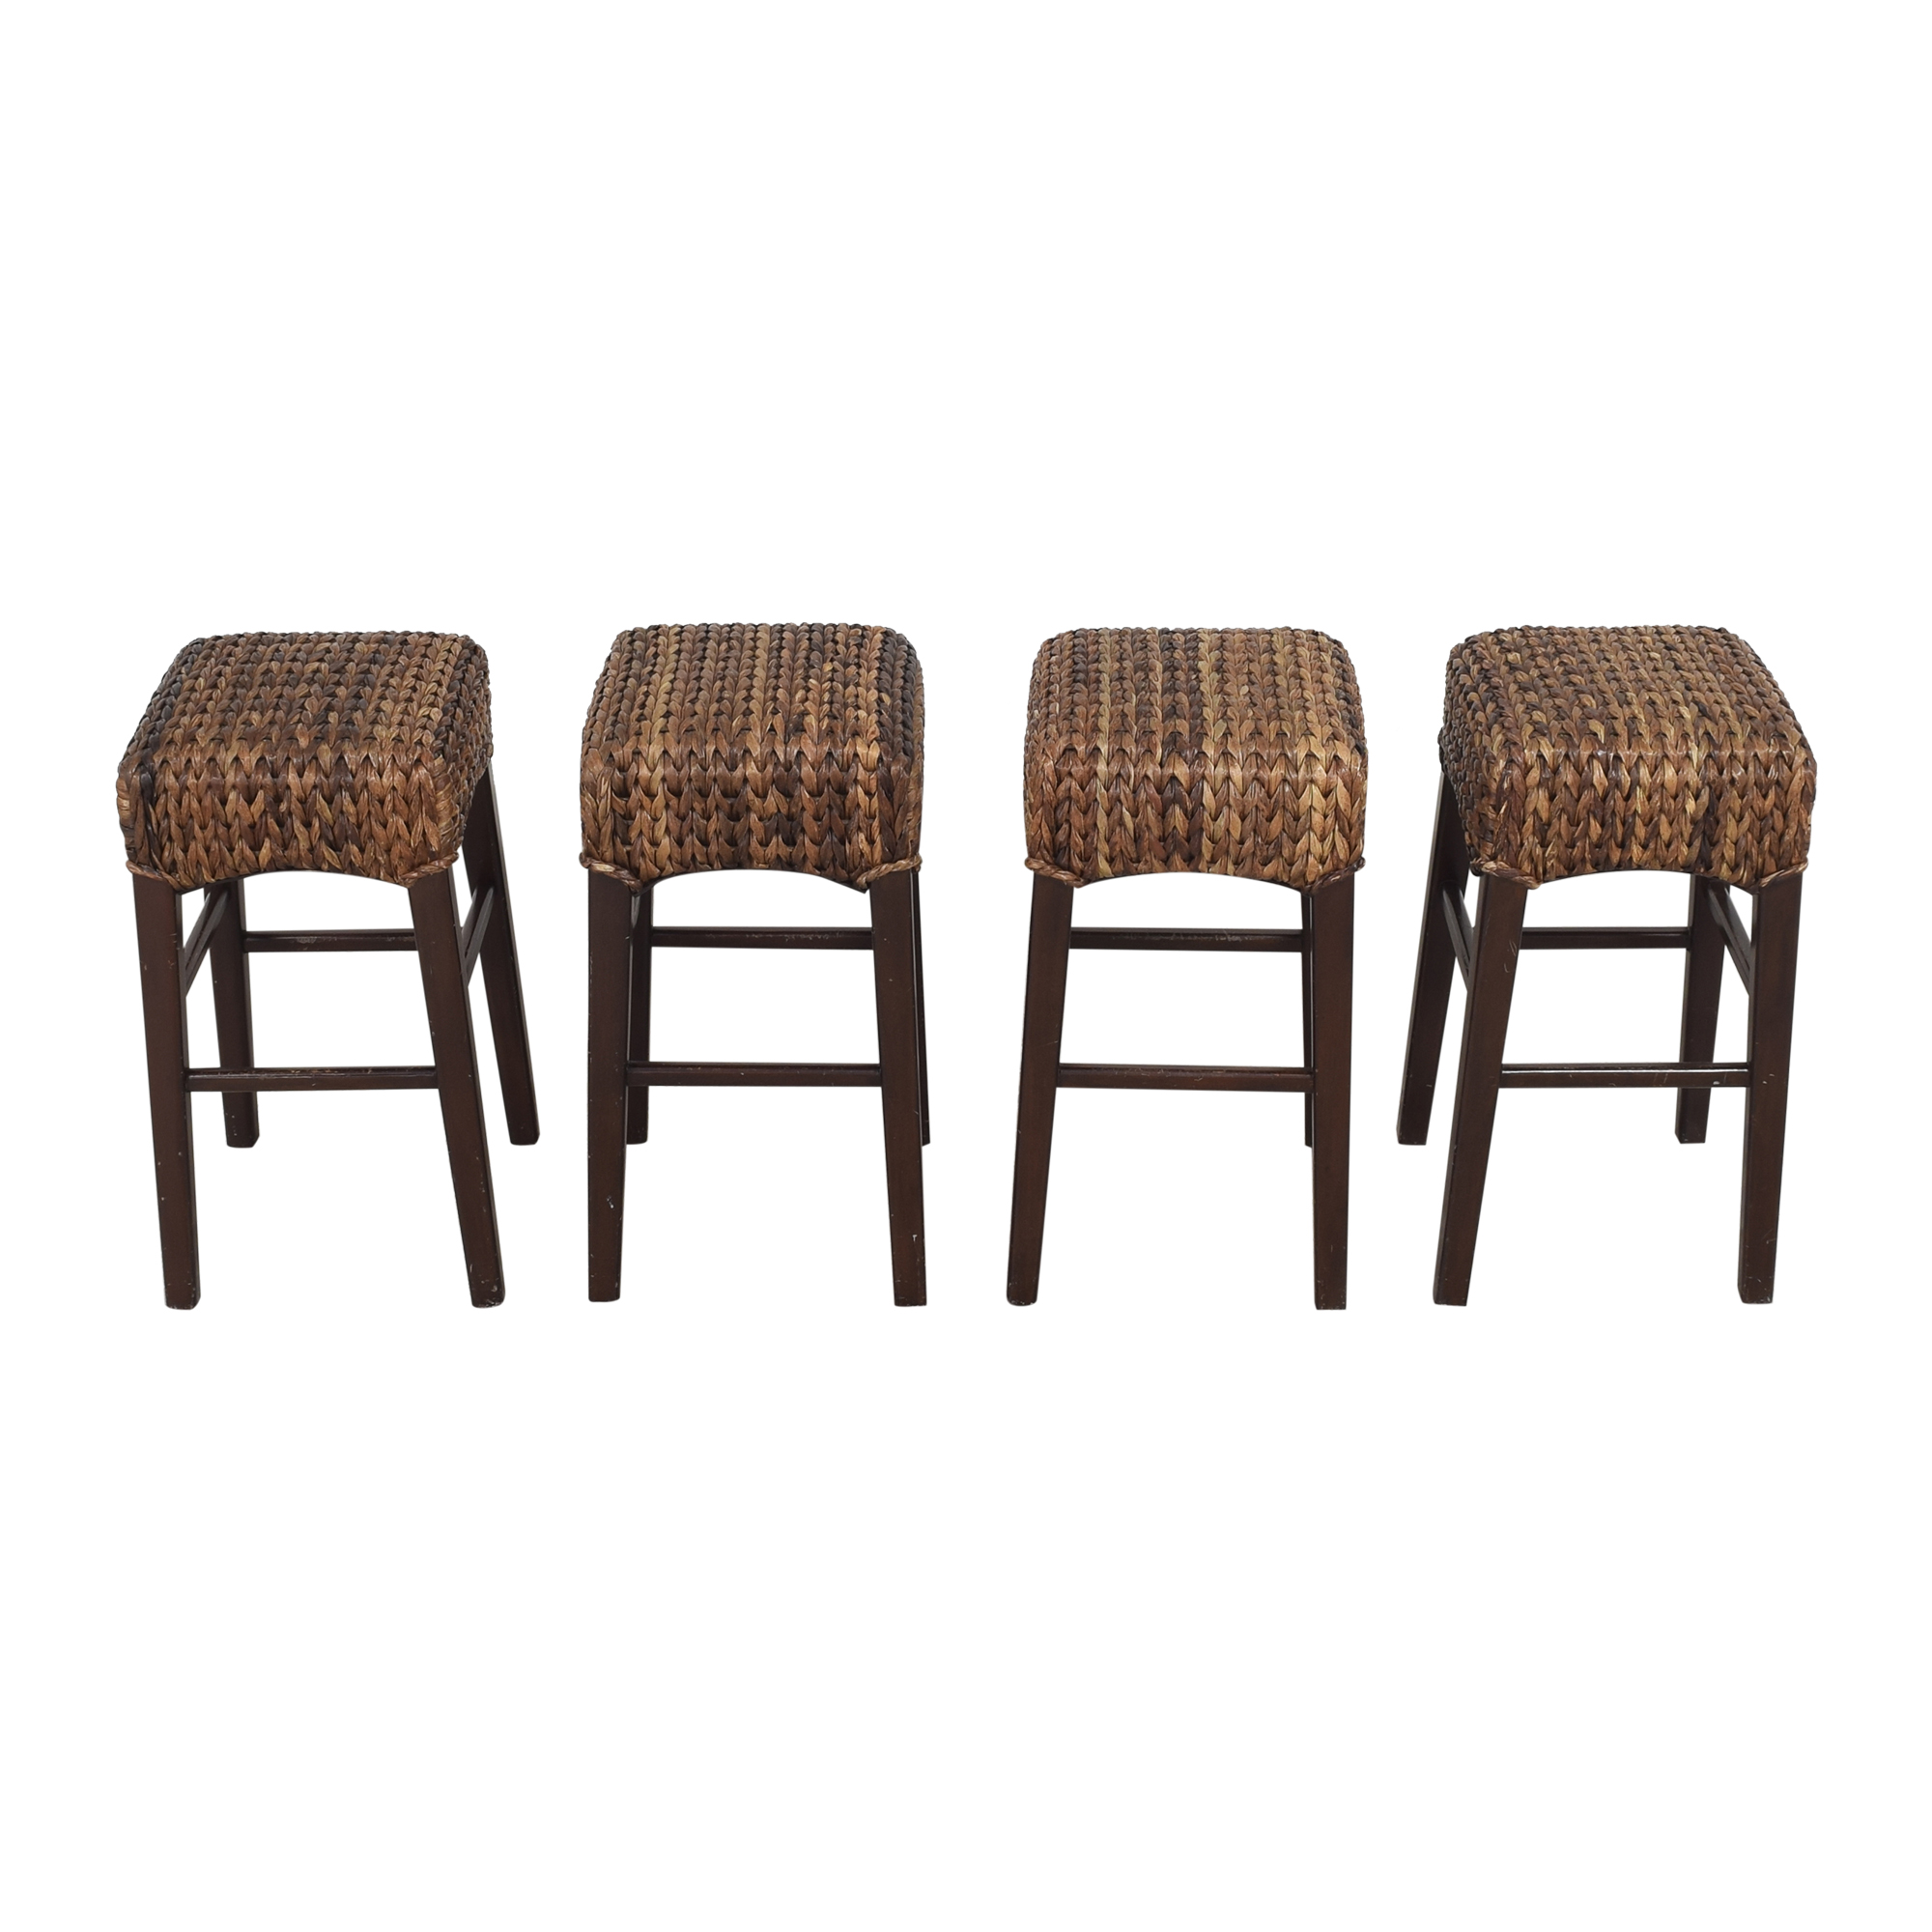 Pottery Barn Pottery Barn Seagrass Counter Stools second hand